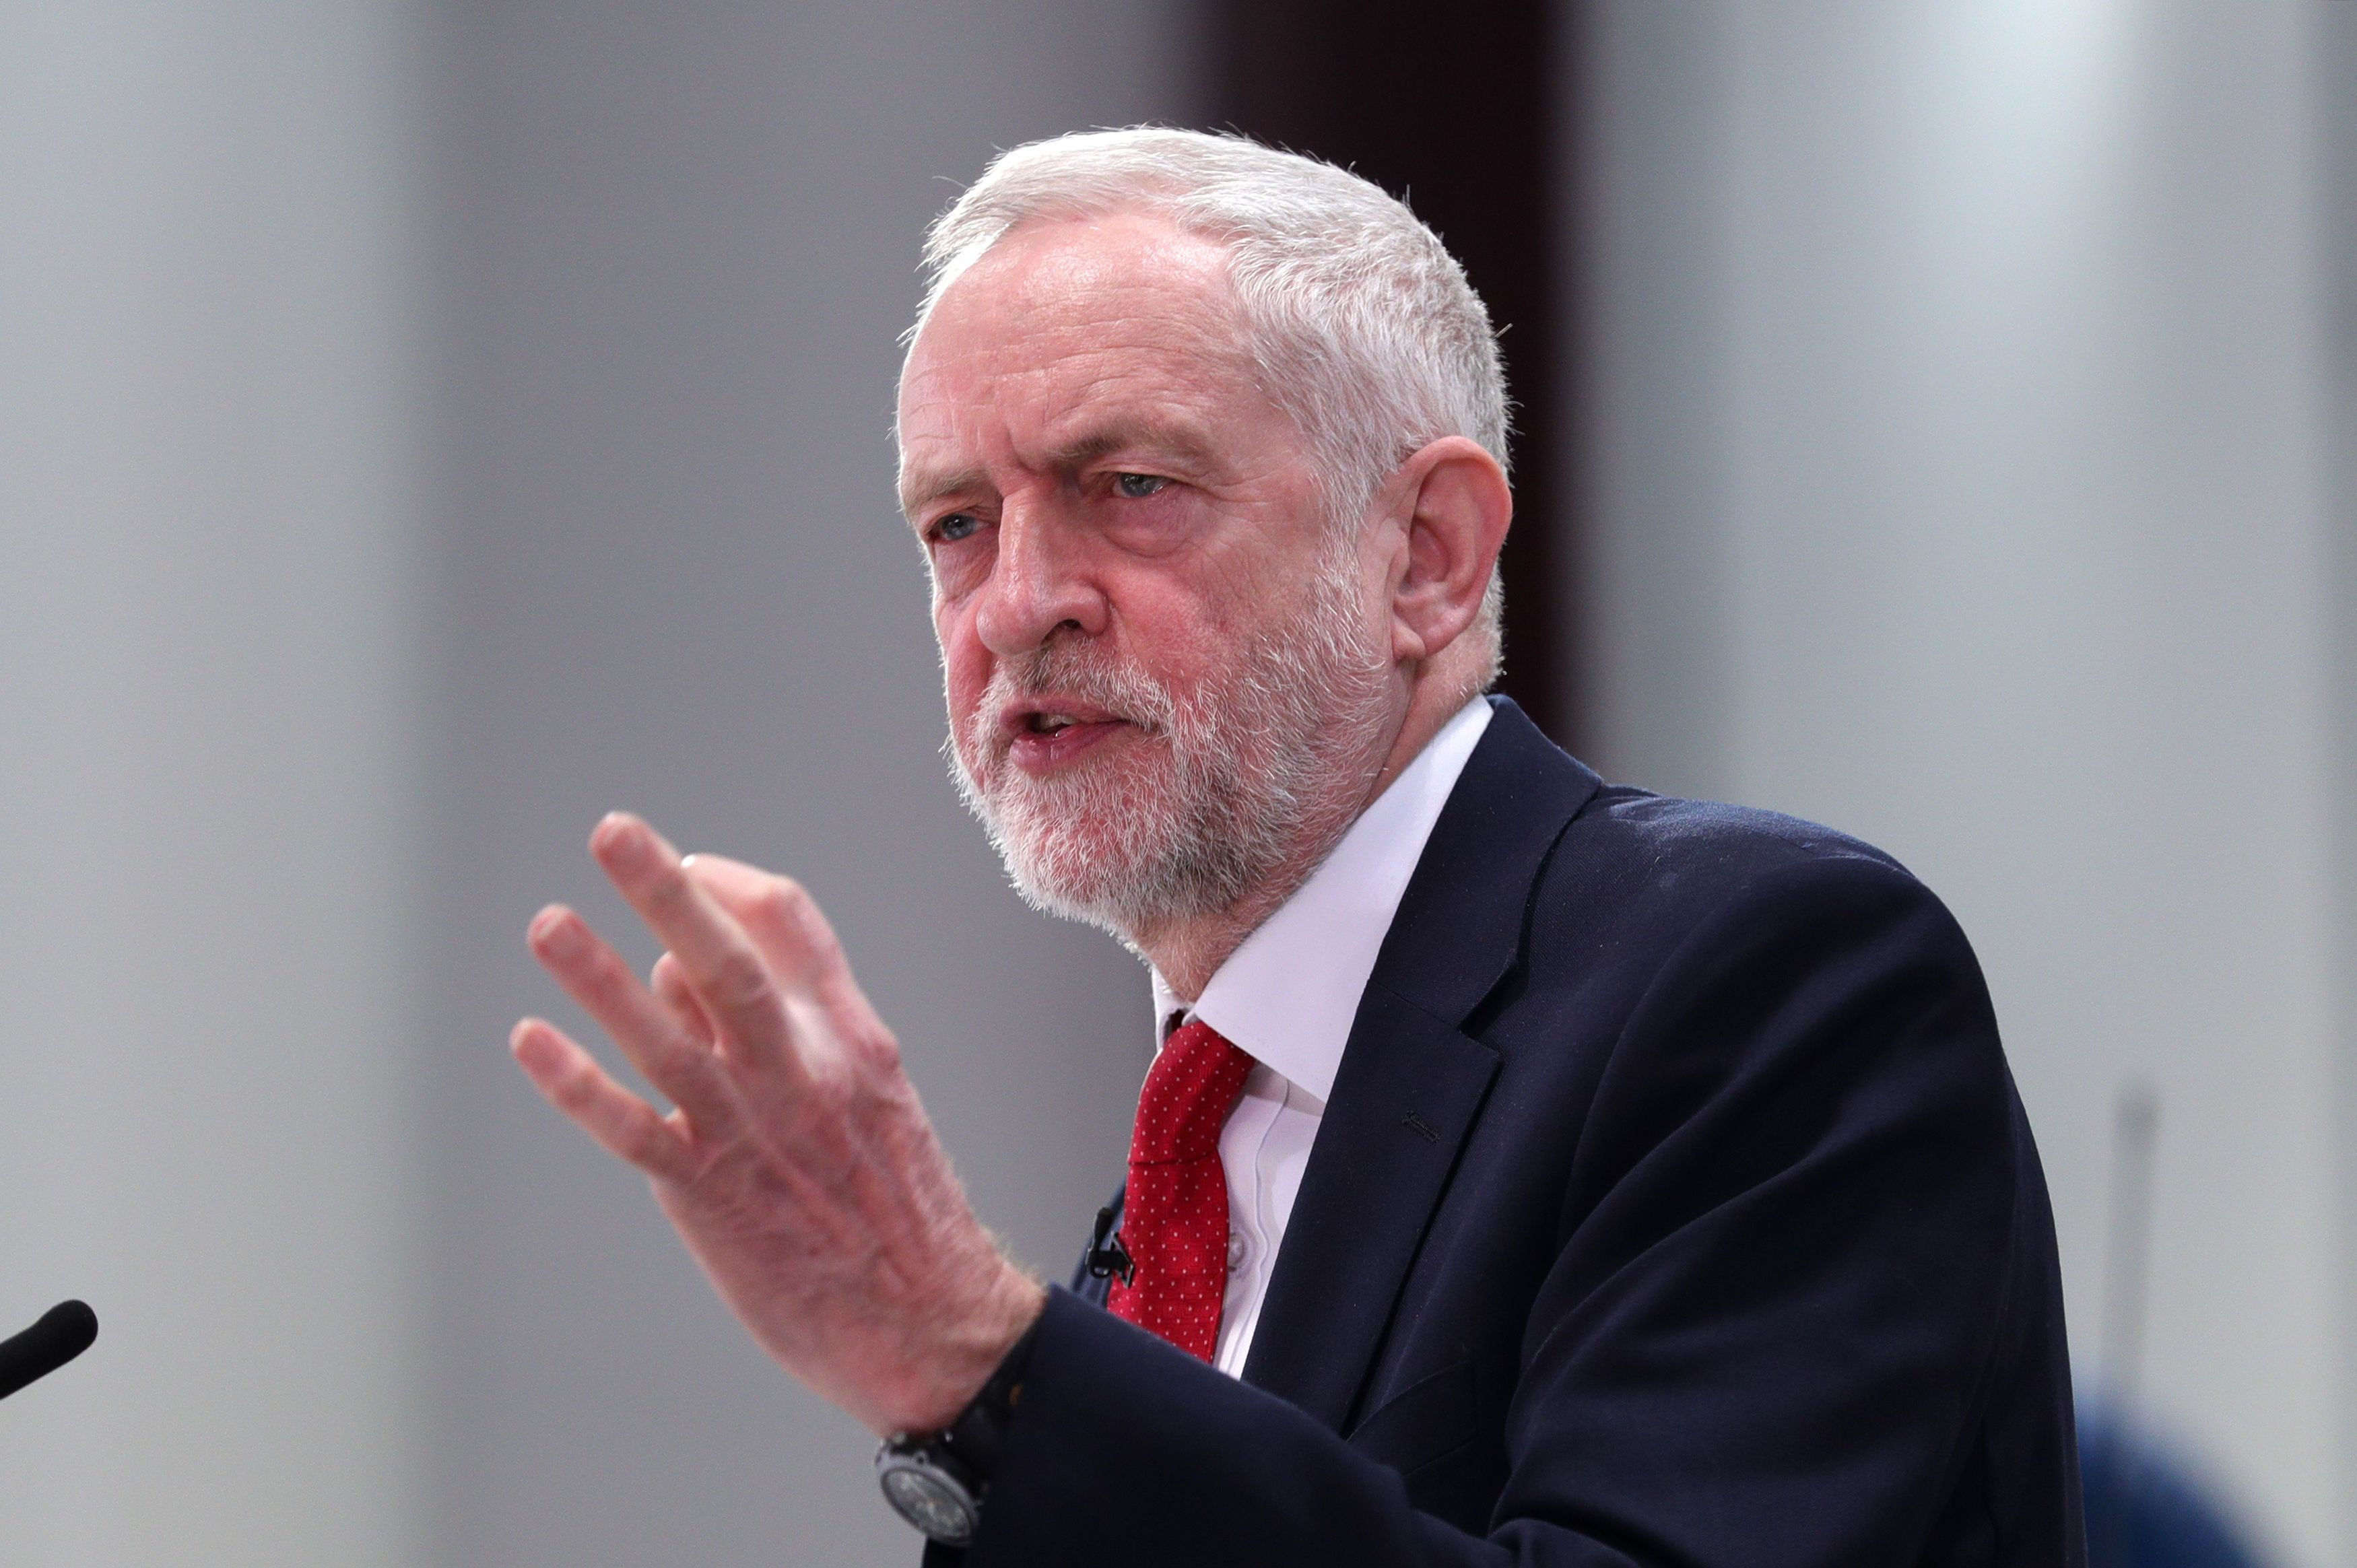 Corbyn admits FB Palestine group membership but denies seeing anti-Semitic posts